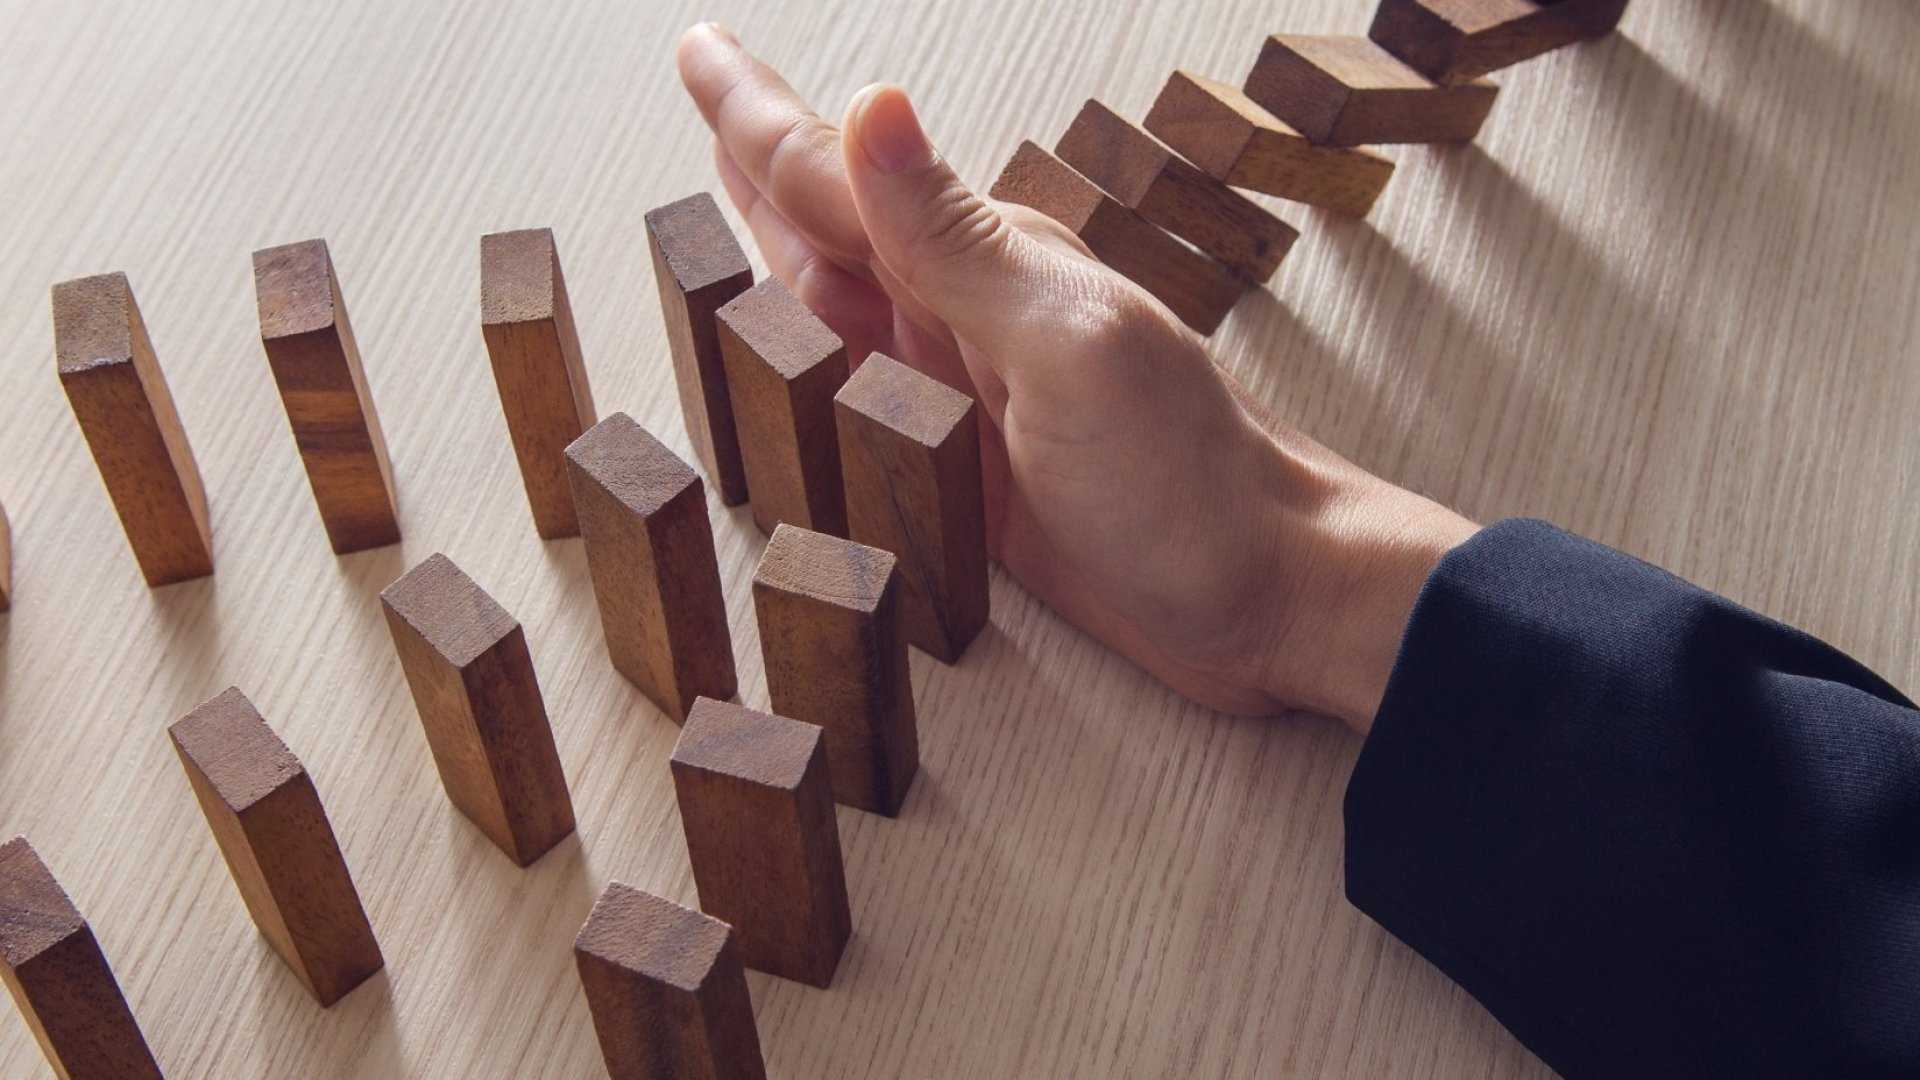 10 Actions All Successful Leaders Avoid to Maximize Efficiency